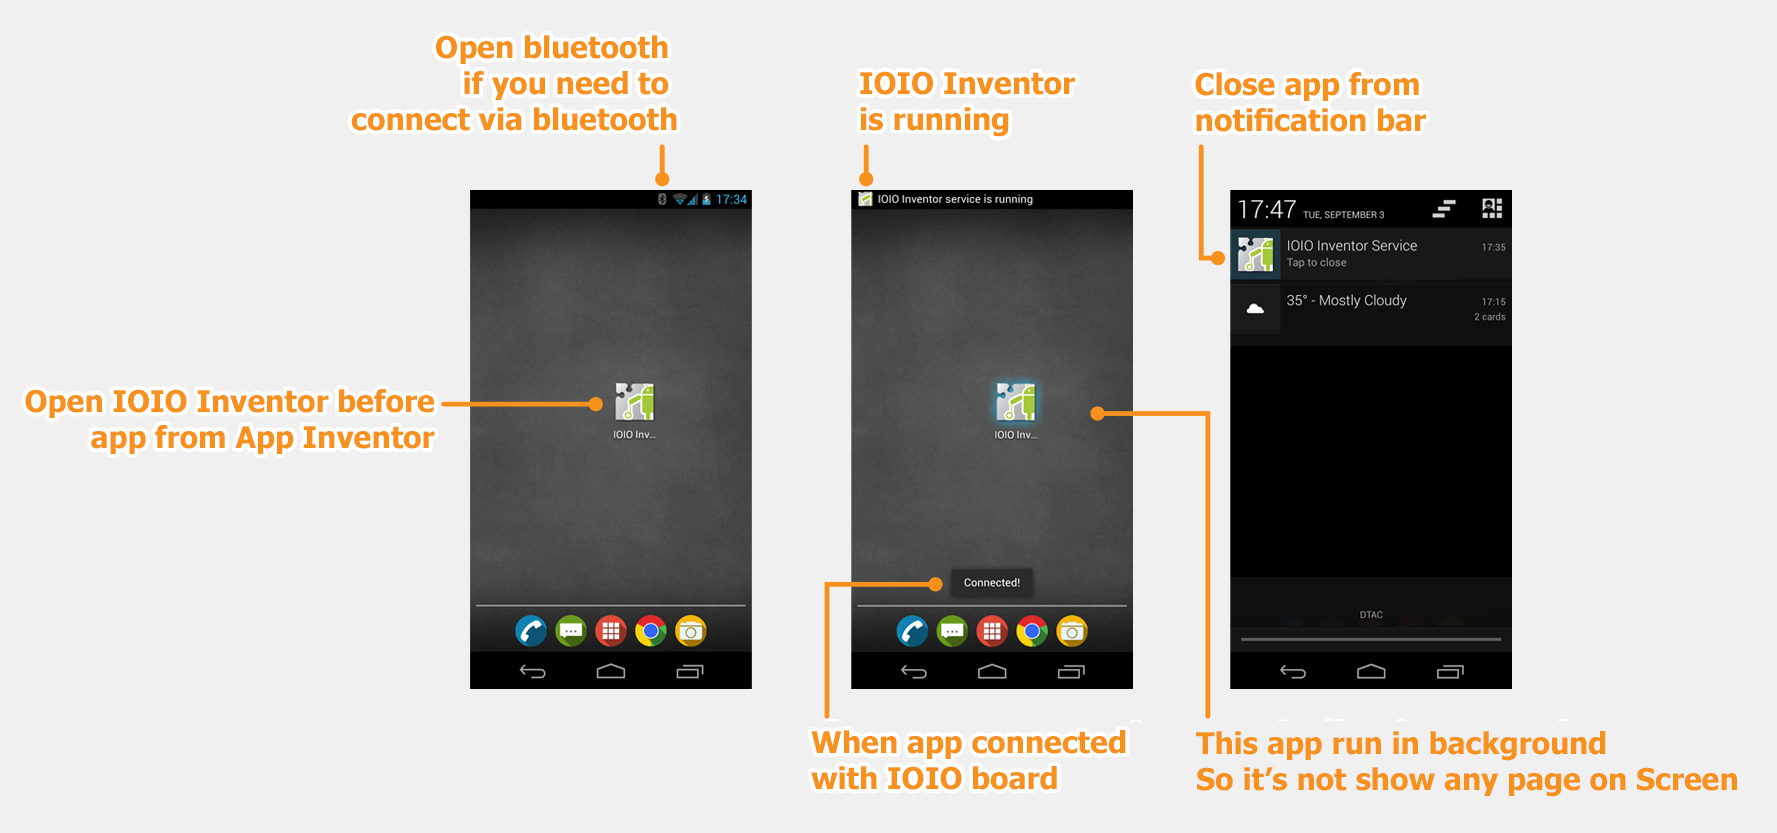 [IOIO] How does IOIO Inventor work?